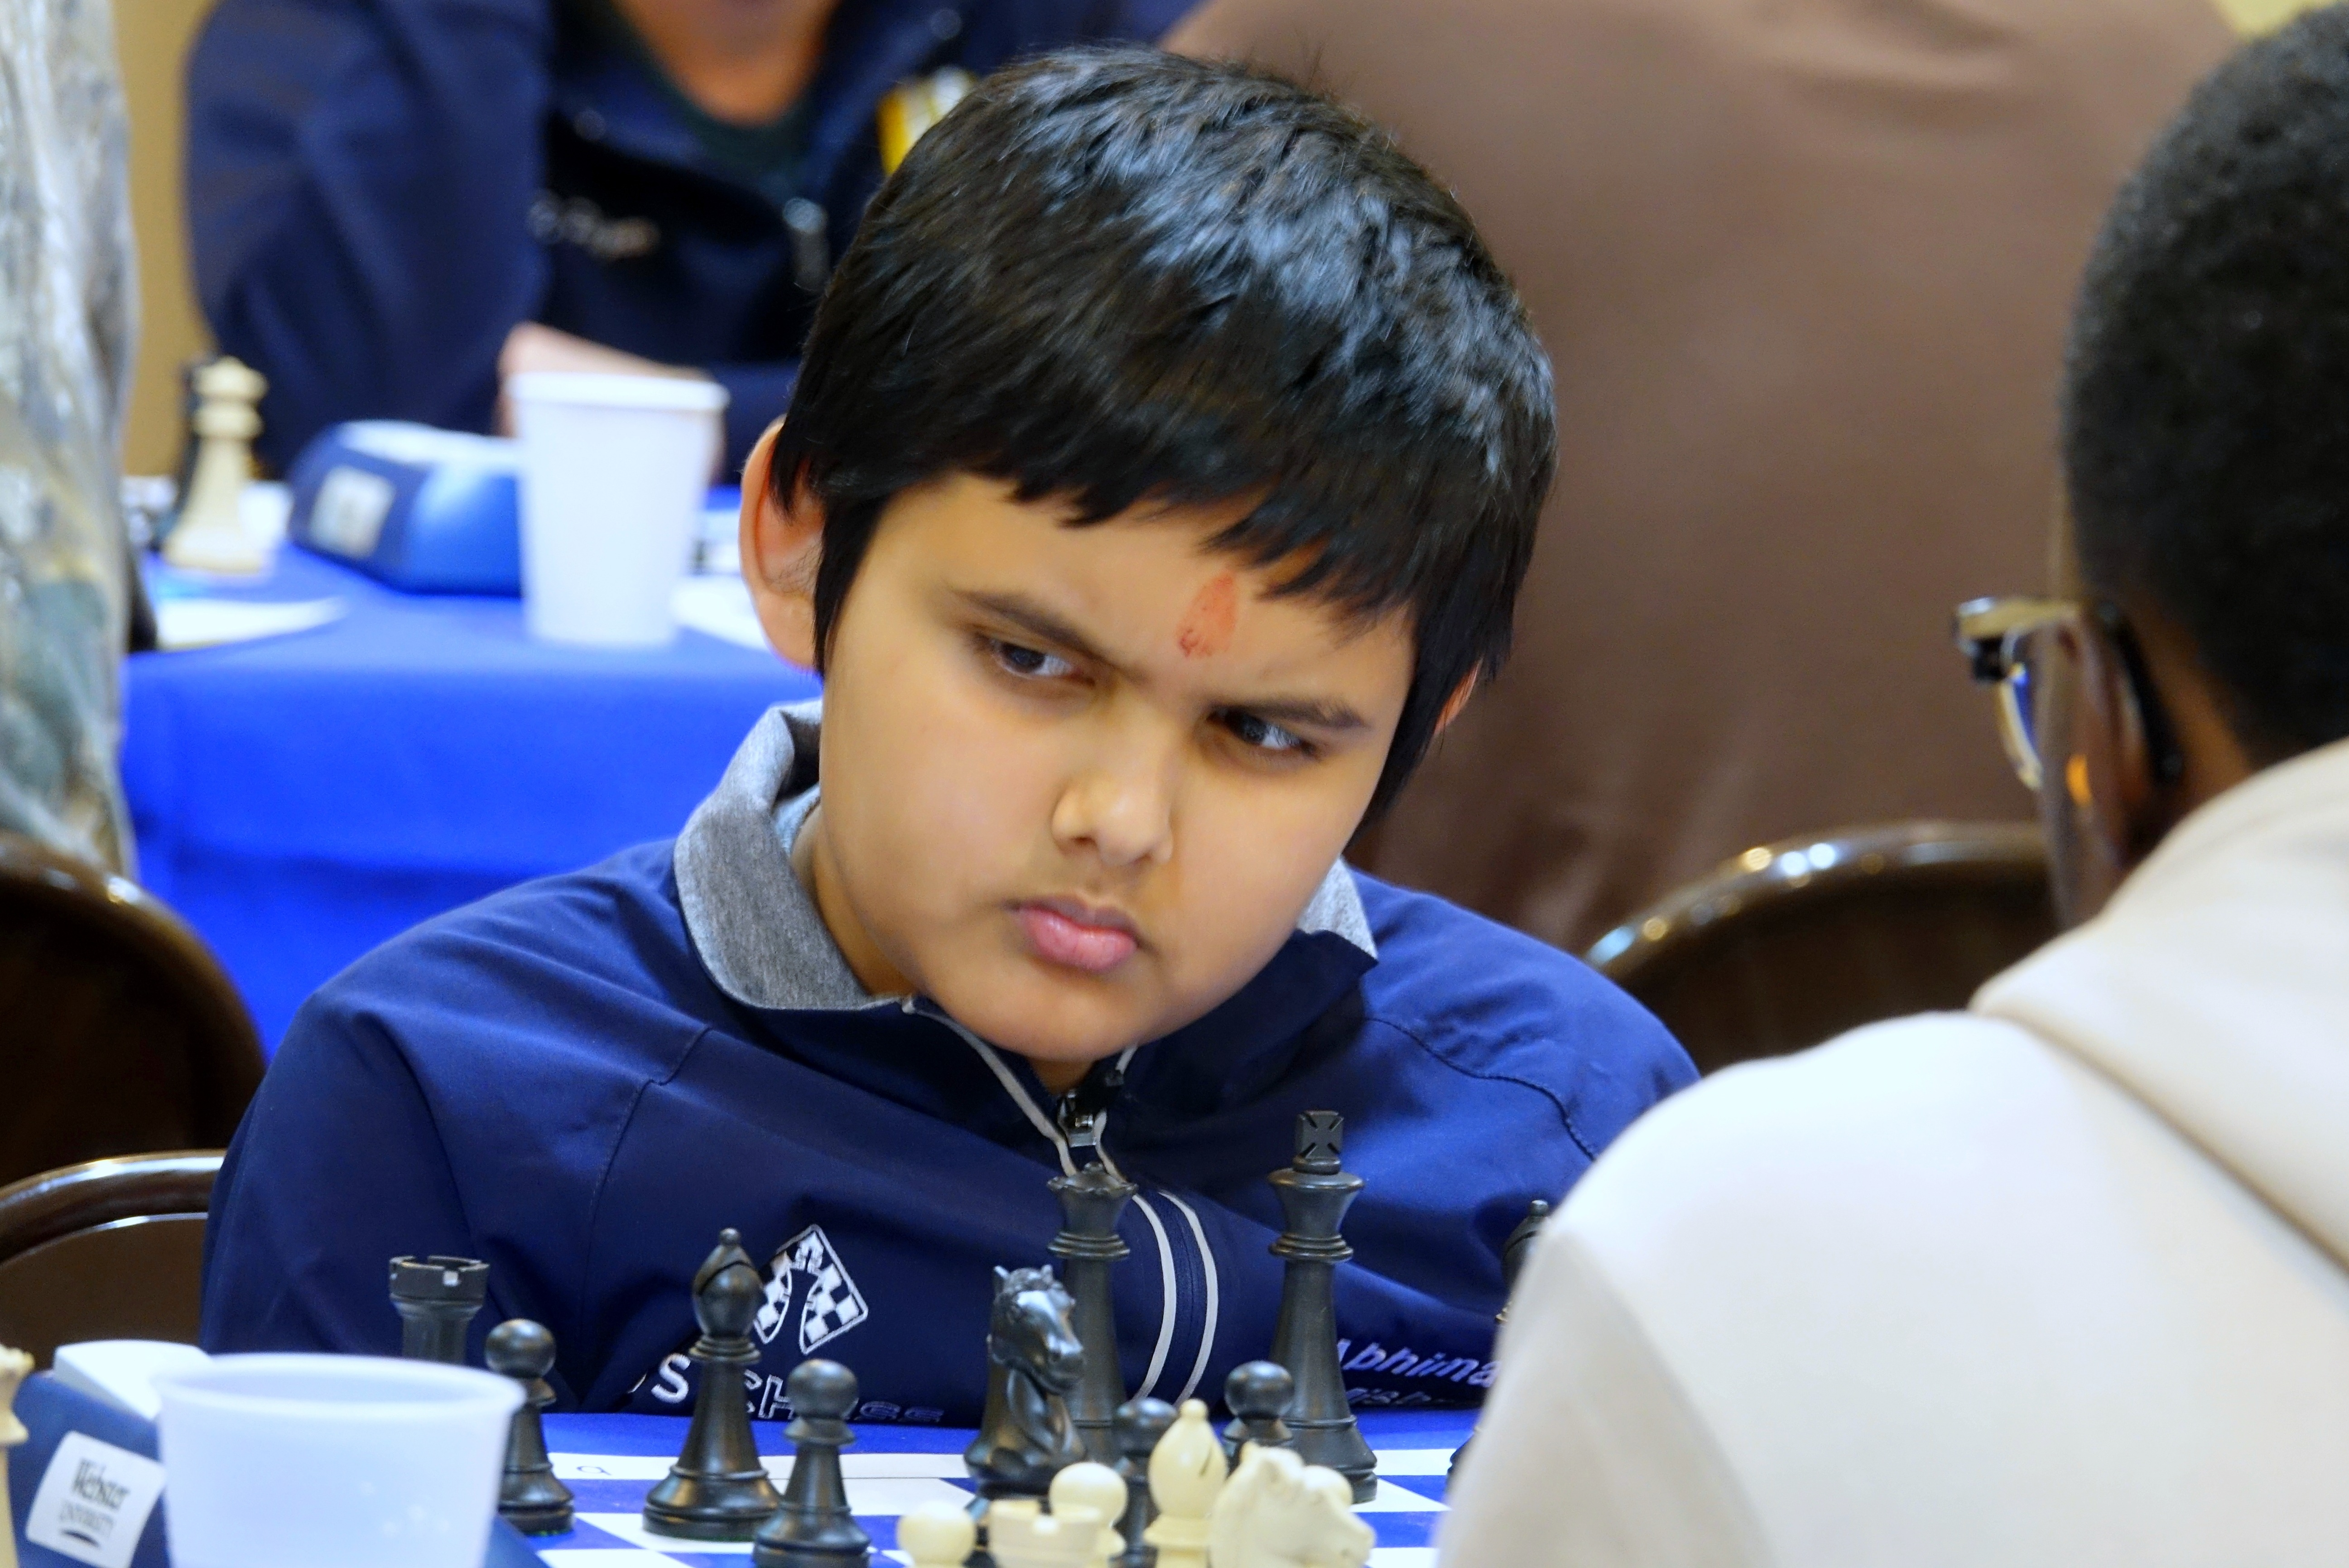 Meet the world's youngest IM, Abhimanyu Mishra of the US